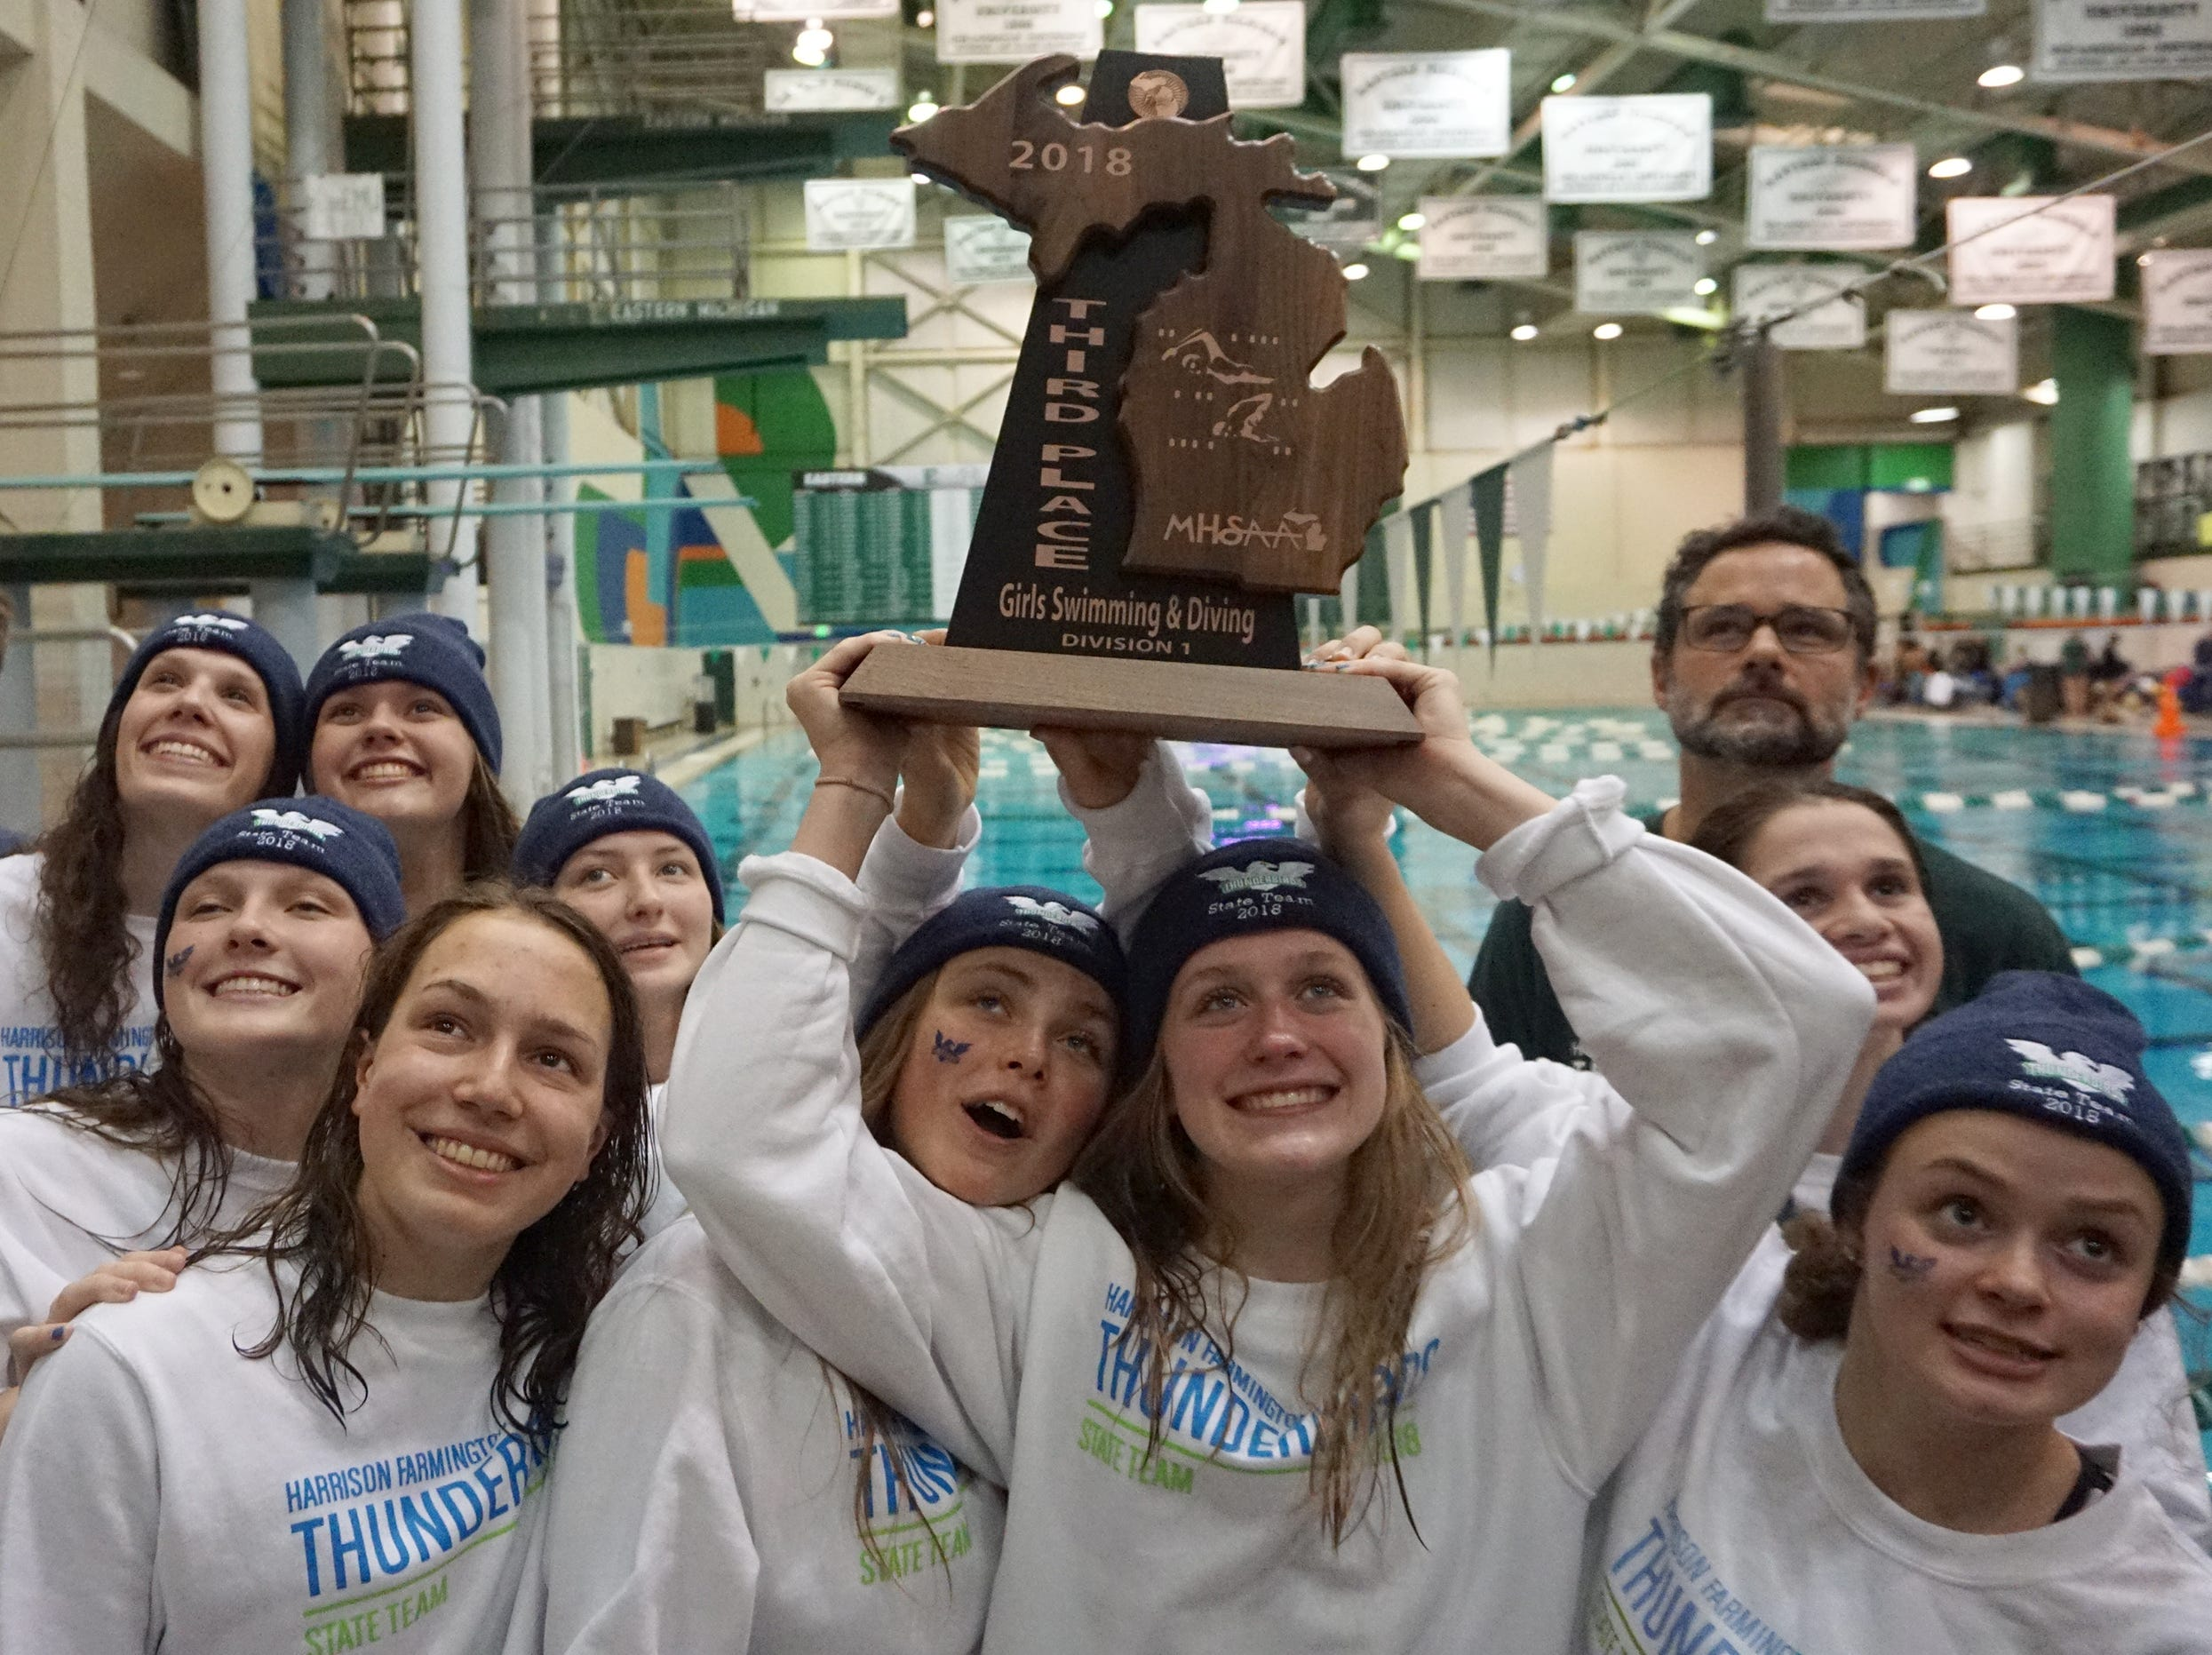 Harrison/Farmington swimmers hold the third place trophy at the Division 1 girls swimming and diving championships held at Eastern Michigan University Nov. 17, 2018.